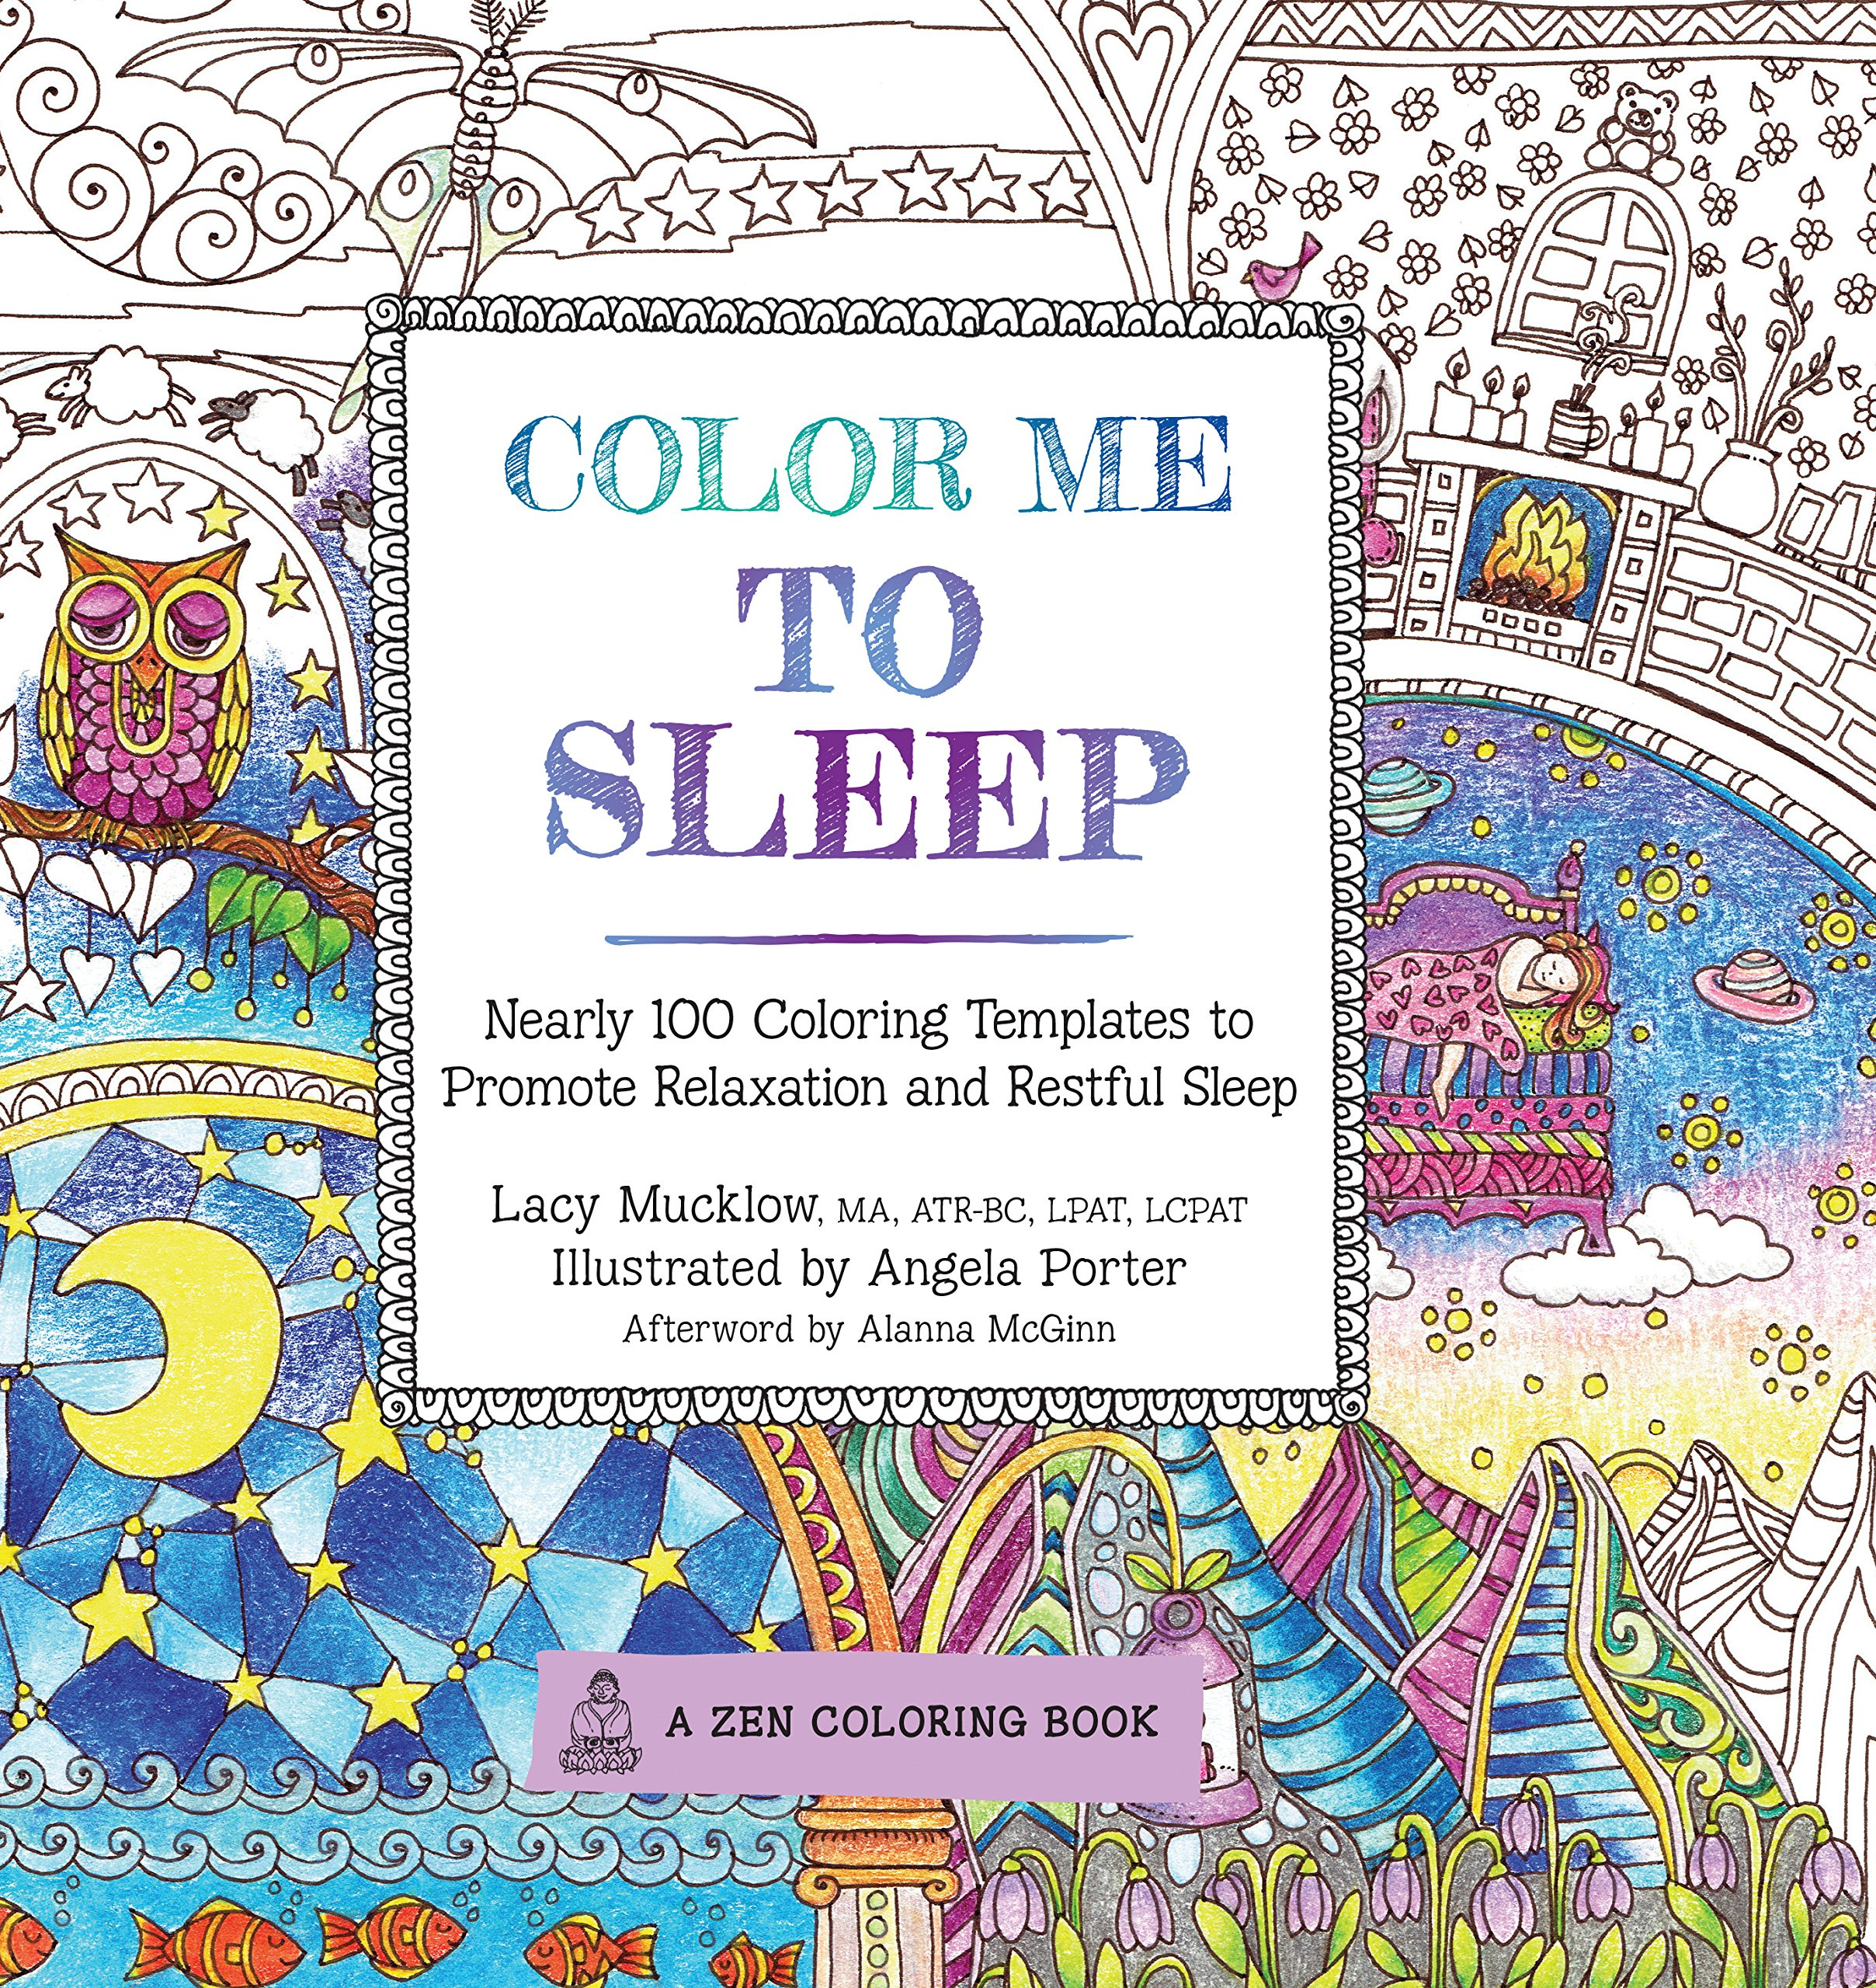 Color Me To Sleep Nearly 100 Coloring Templates Promote Relaxation And Restful A Zen Book Lacy Mucklow Angela Porter Alanna McGinn